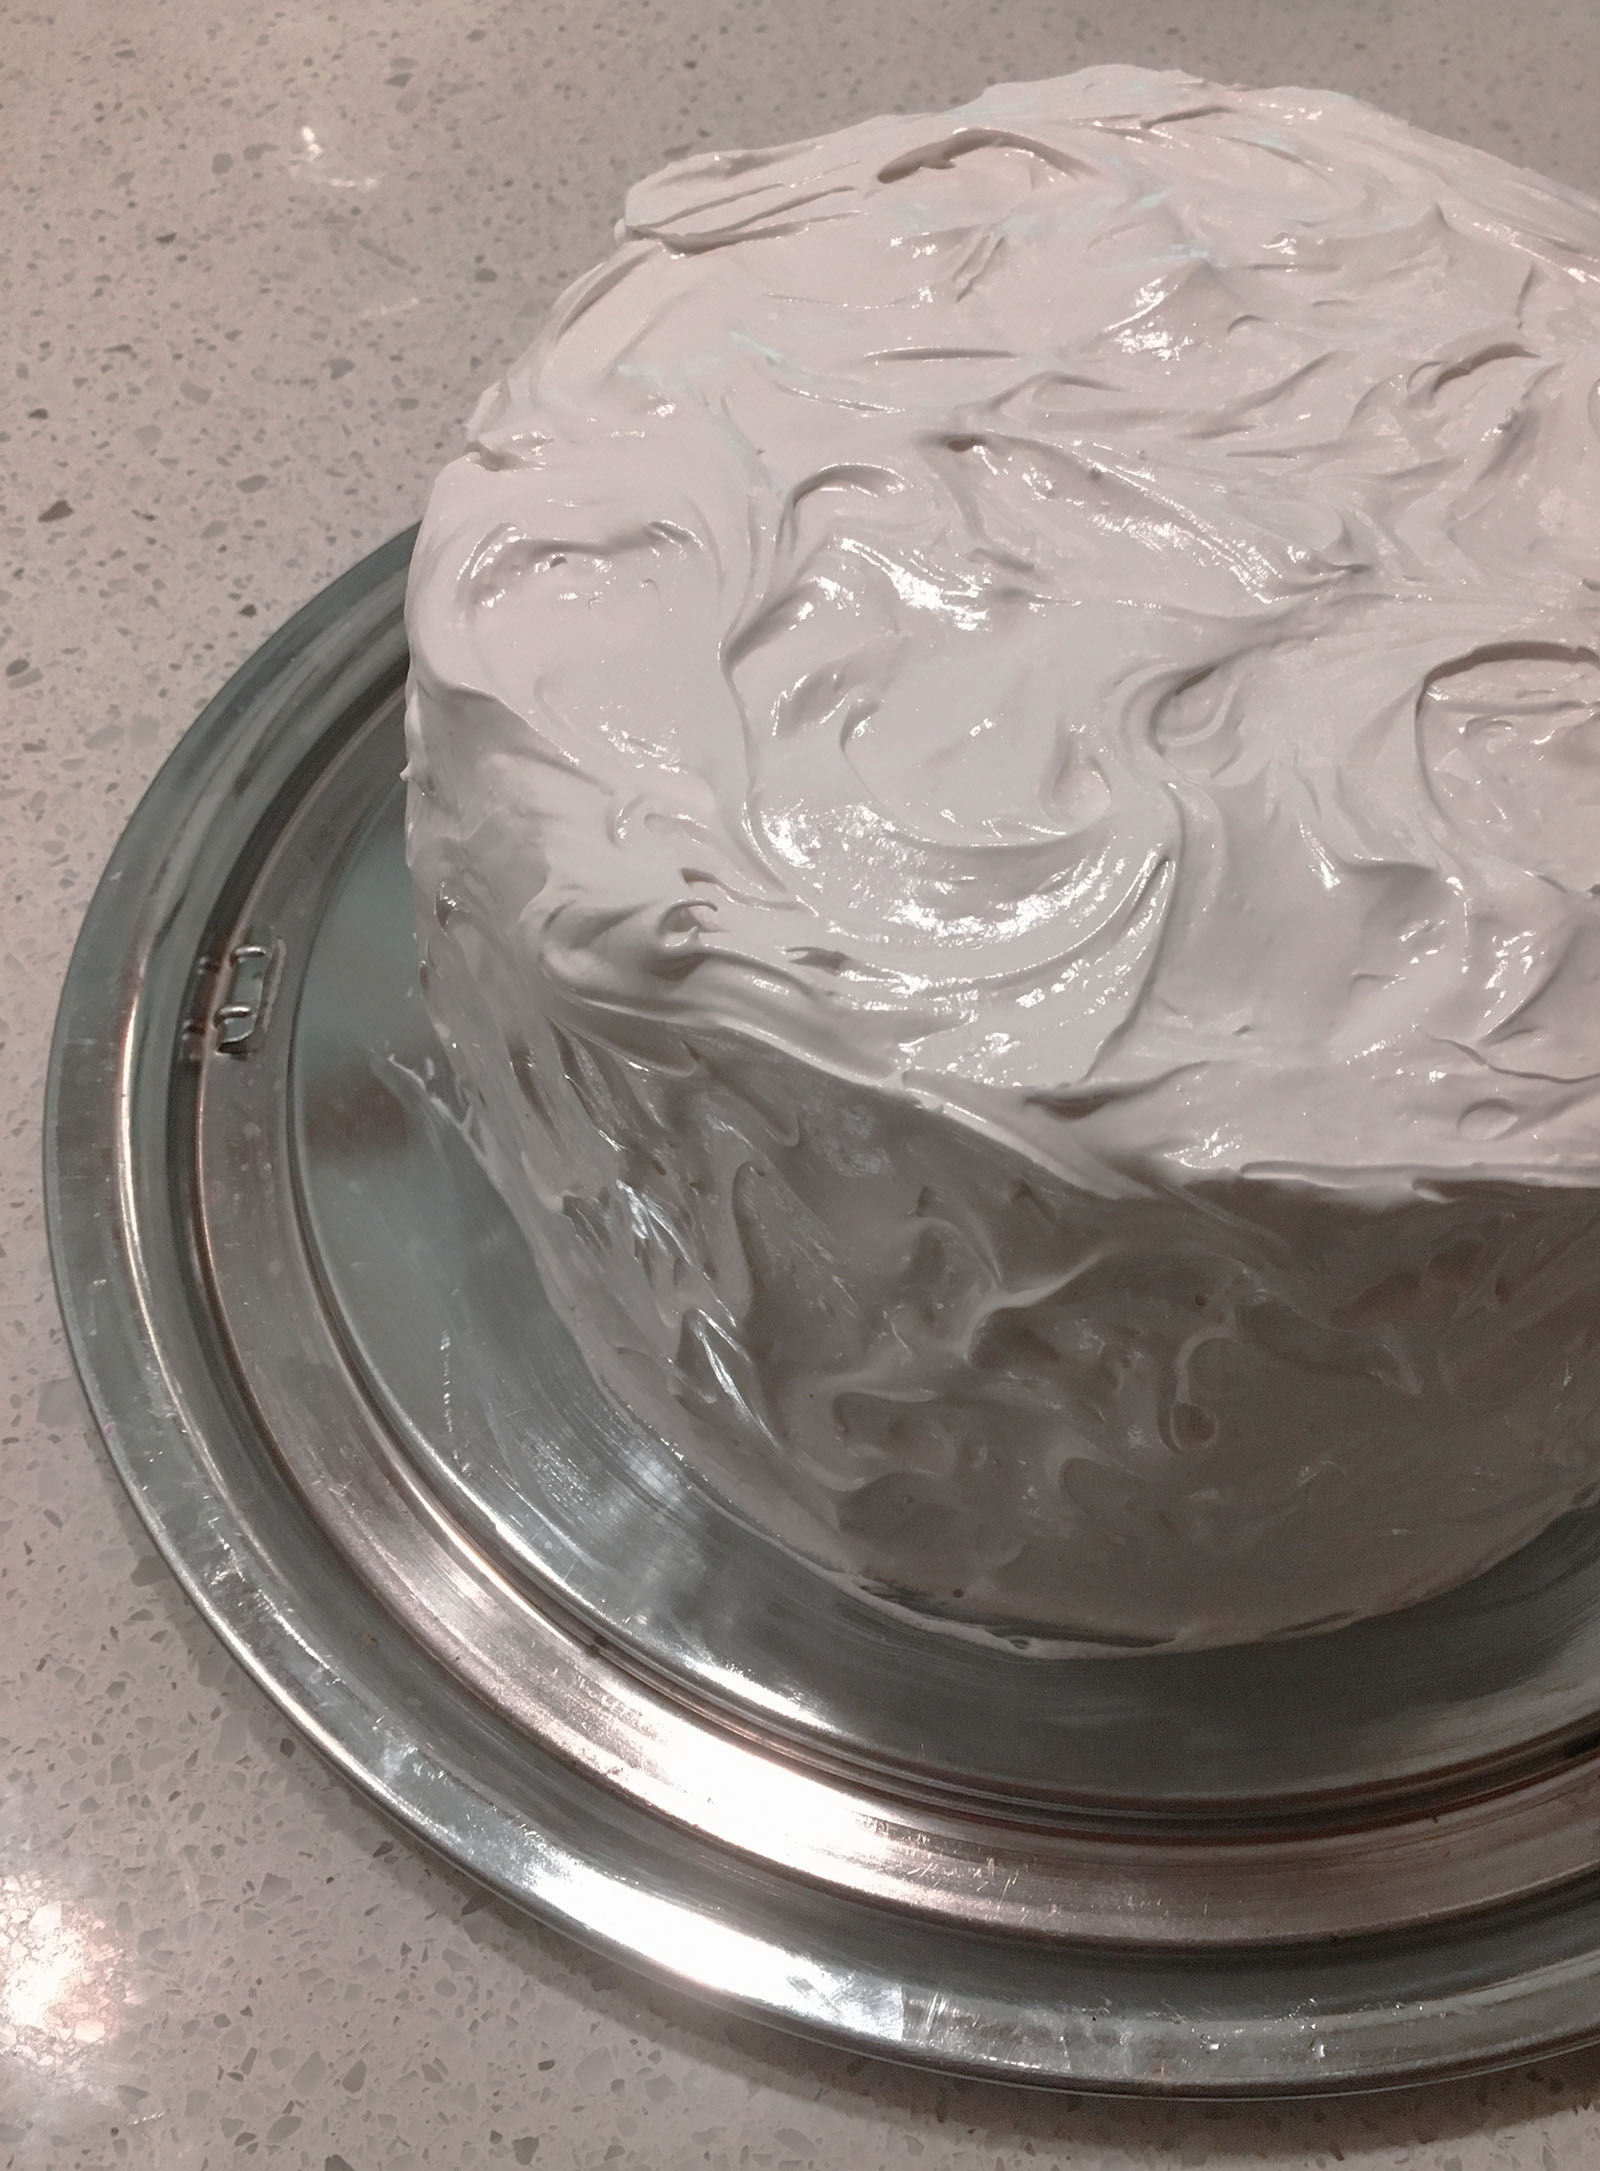 marshmallow fluff frosting on the outside of a cake